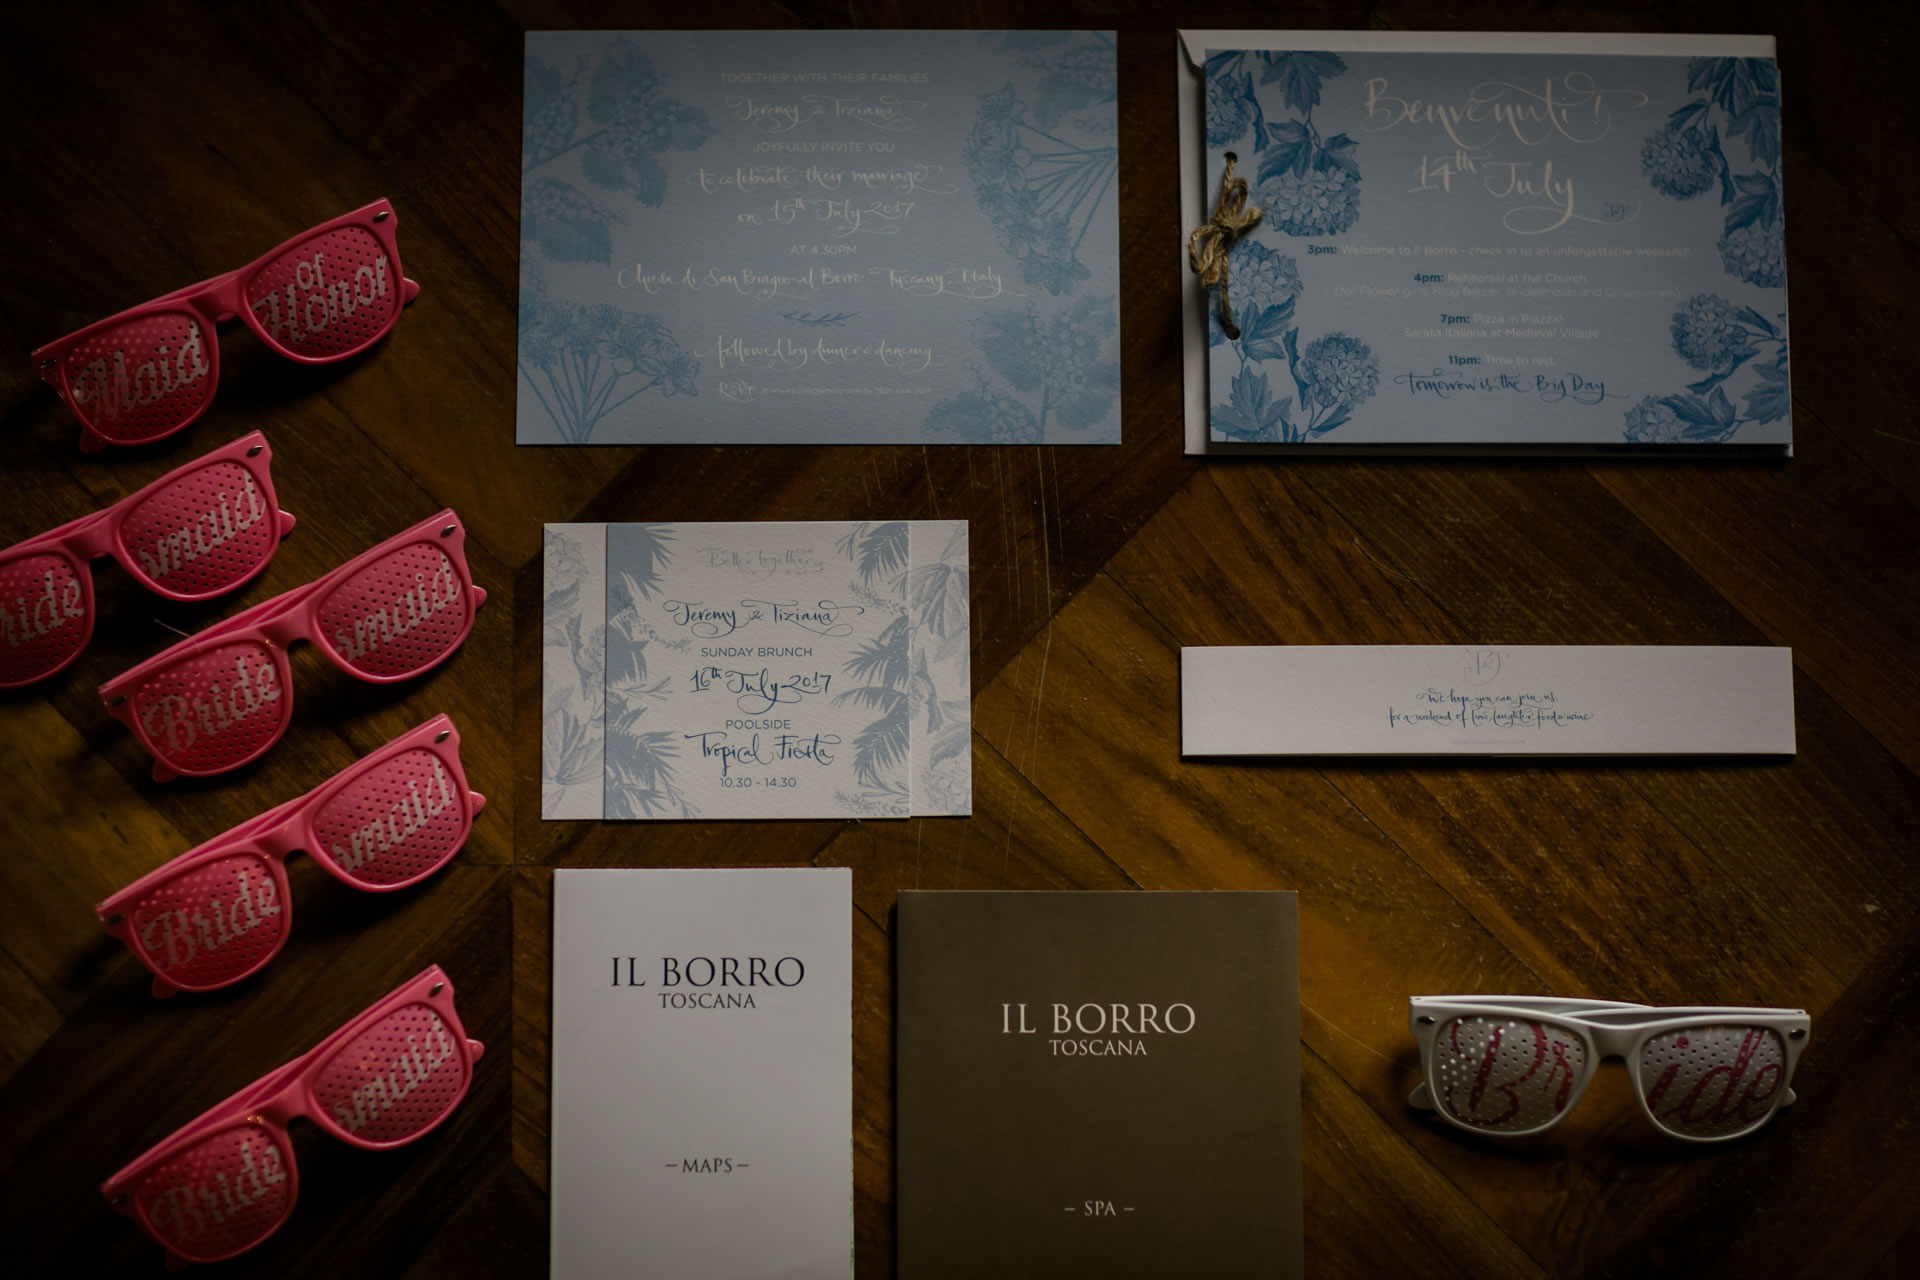 Glasses - 2 :: Amazing wedding day at Il Borro :: Luxury wedding photography - 1 :: Glasses - 2